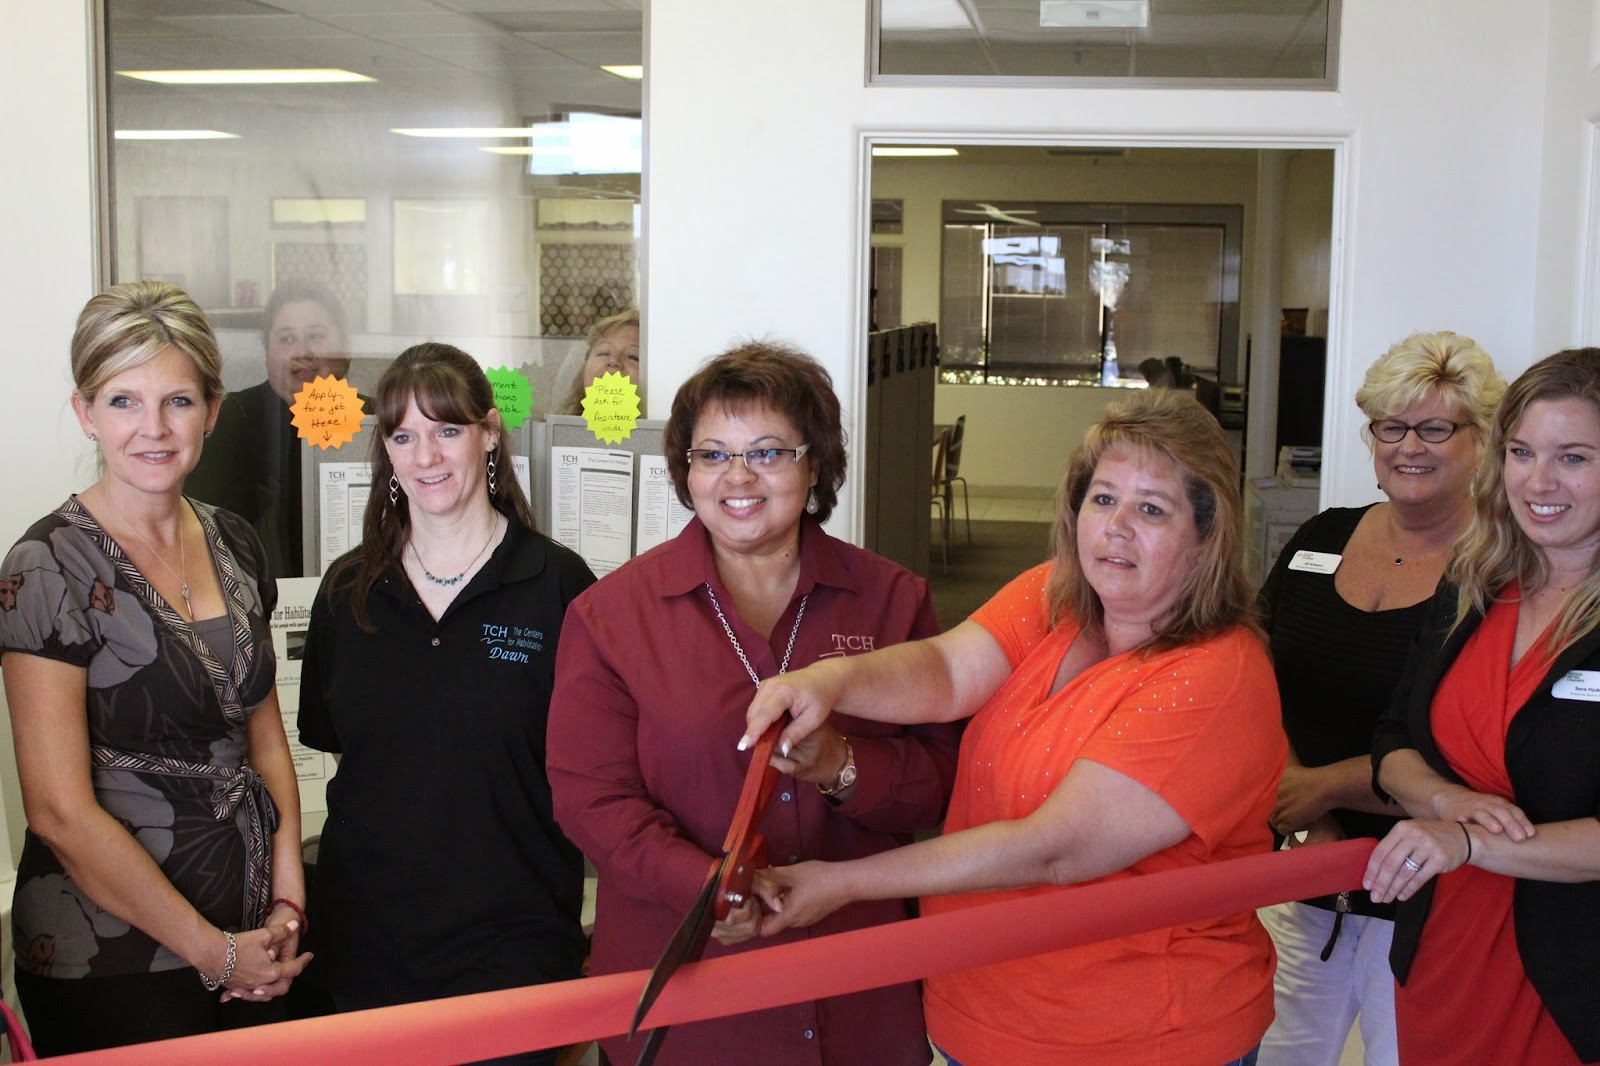 The Centers for Habilitation (TCH) is delighted to announce the Grand Opening, June 27th, of the new location of their Tucson Office and Day Training Center on Bilby Road.  TCH employs individuals with disabilities on nearby Davis-Monthan AFB and provides other opportunities for persons with special needs.